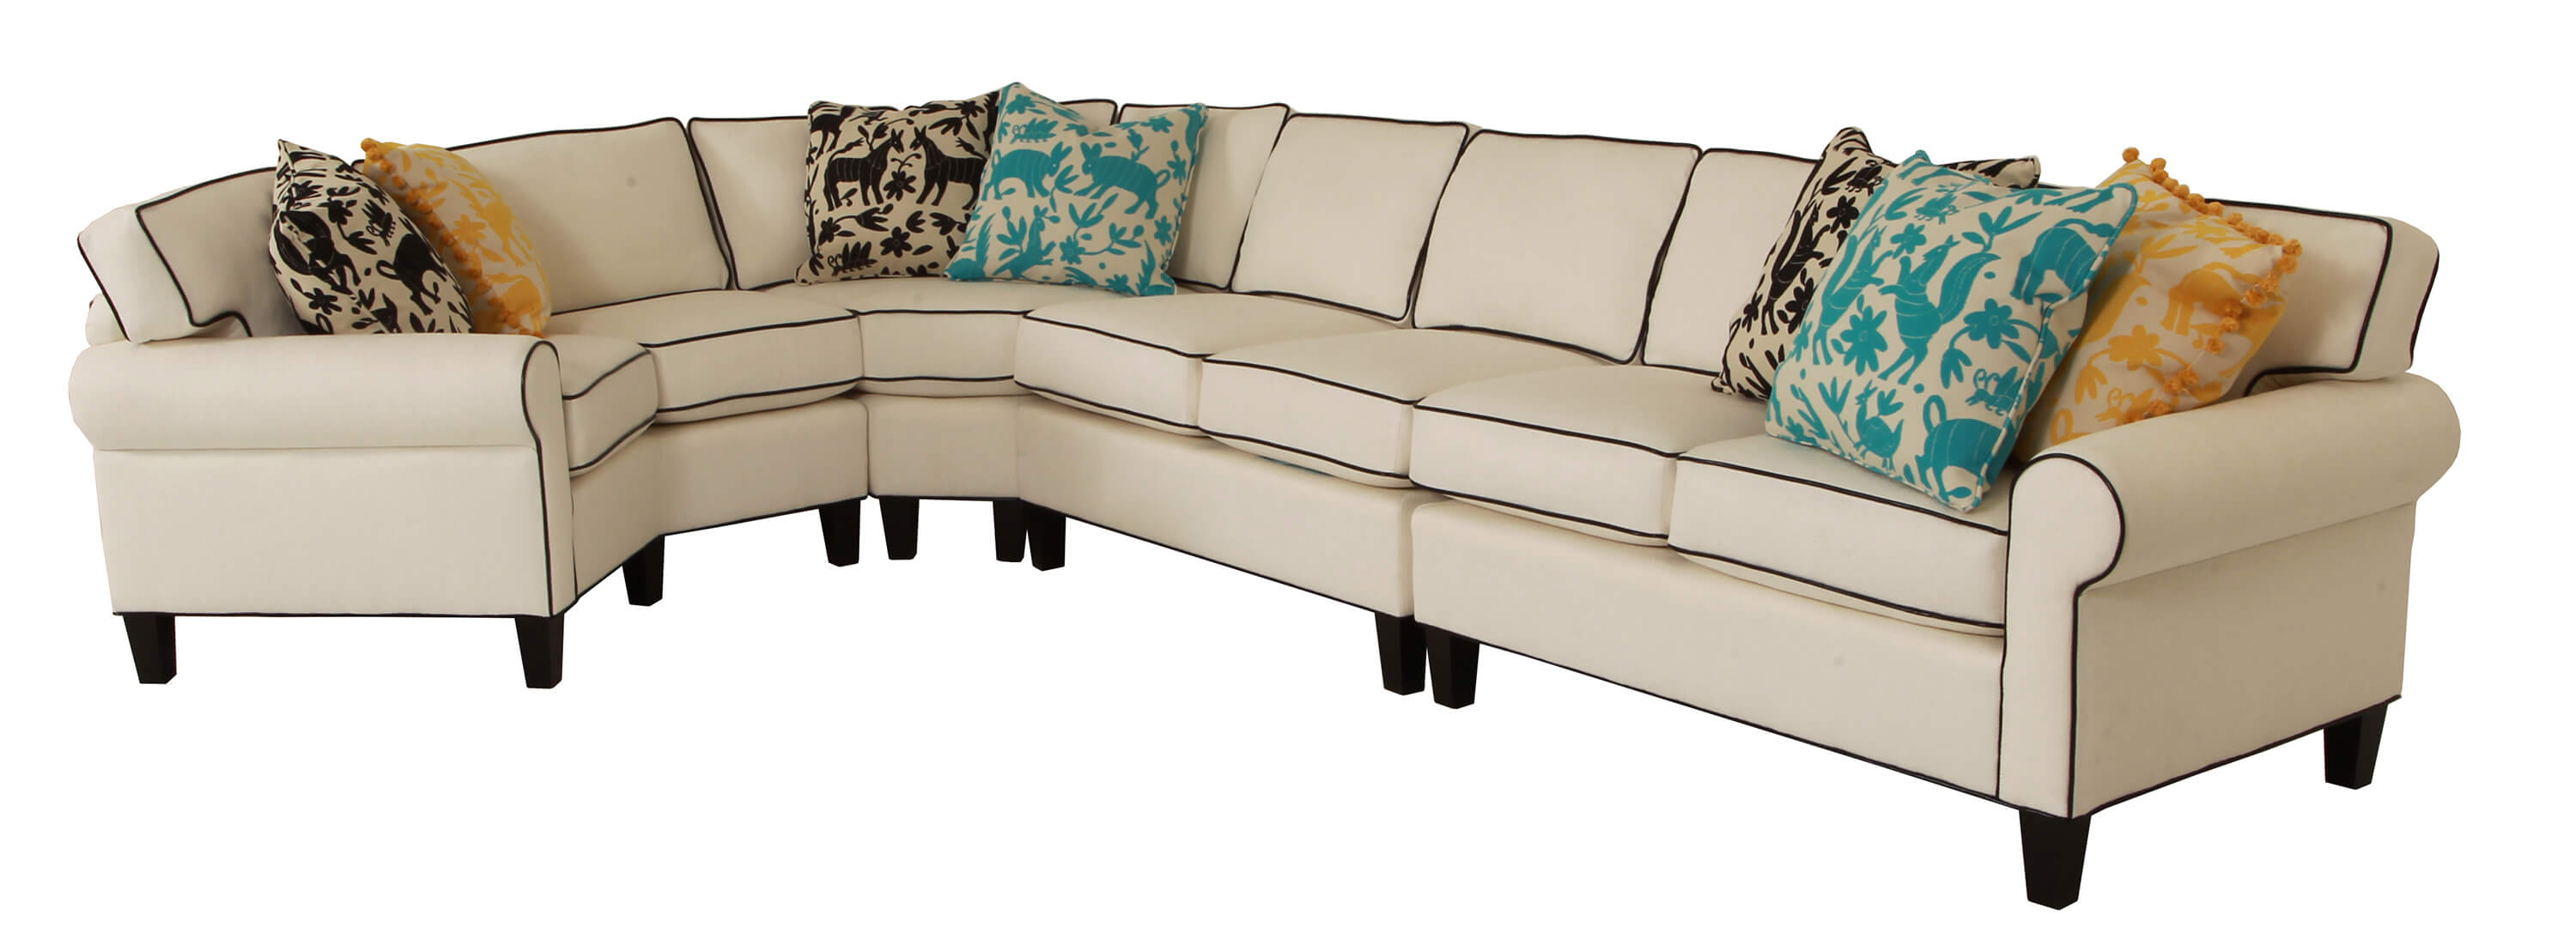 Copley-Square_Sectional_Simple Chic